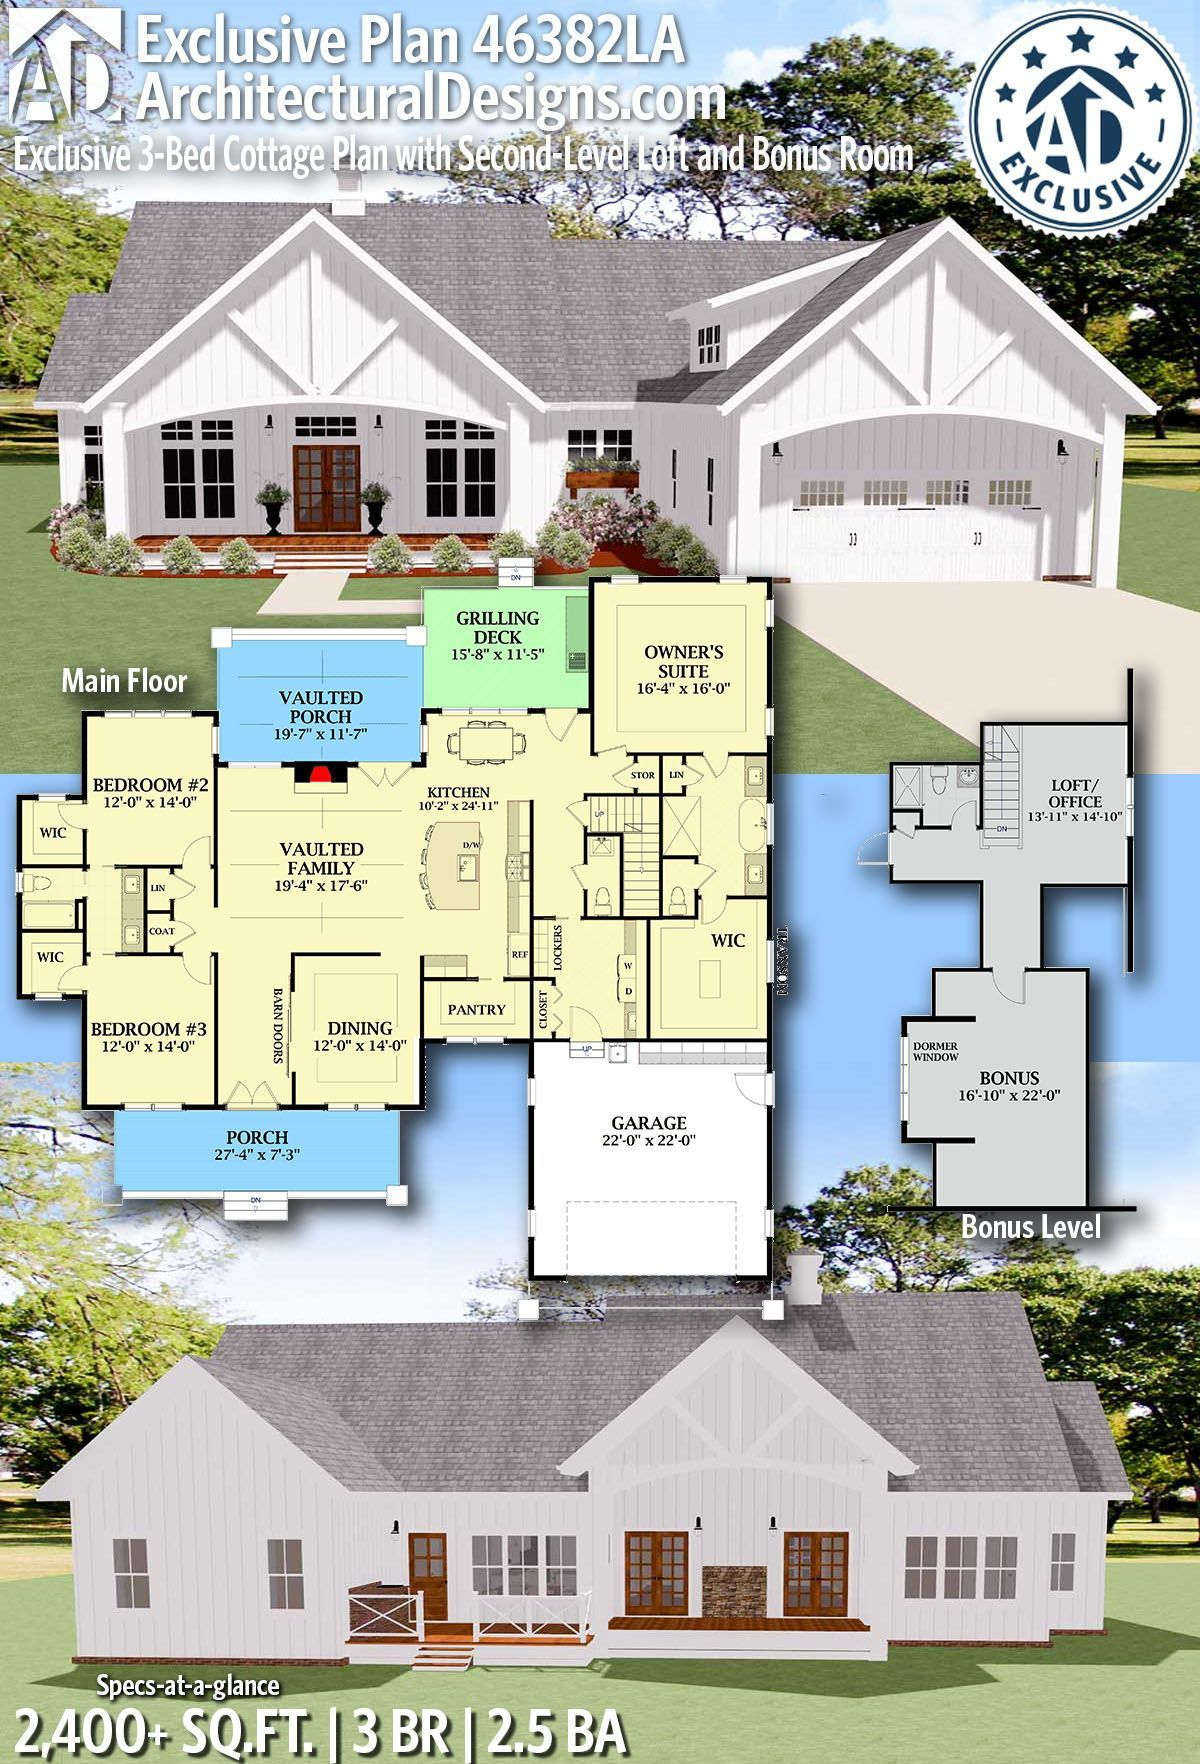 Plan 46382LA: Exclusive 3-Bed Cottage Plan with Second ...